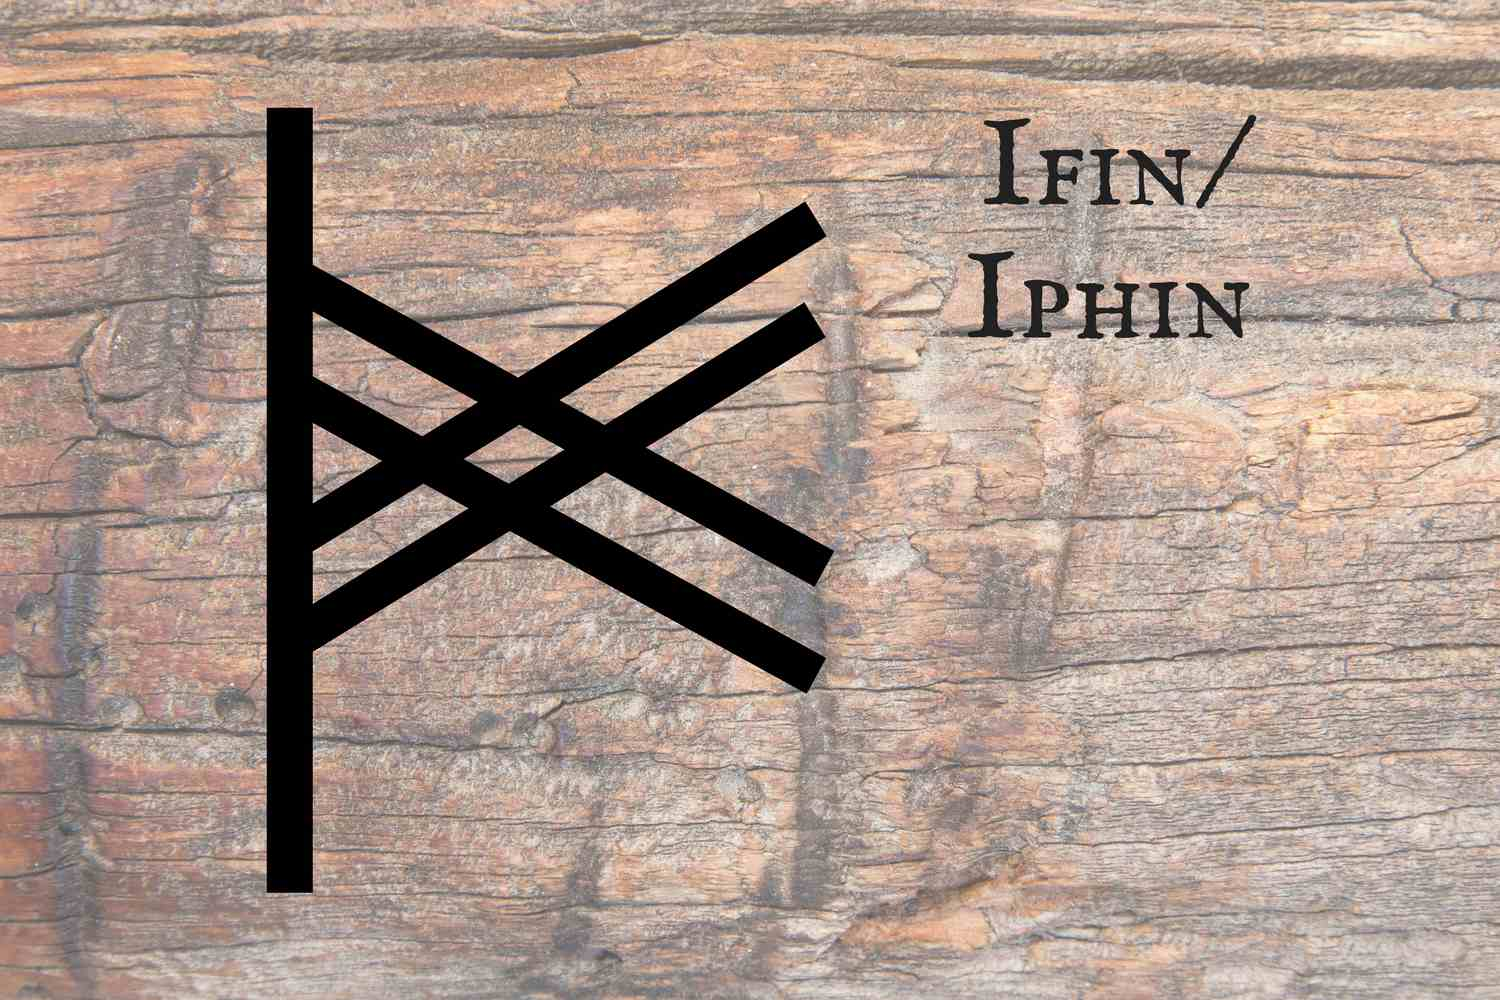 Celtic ogham symbols and their meanings biocorpaavc Images